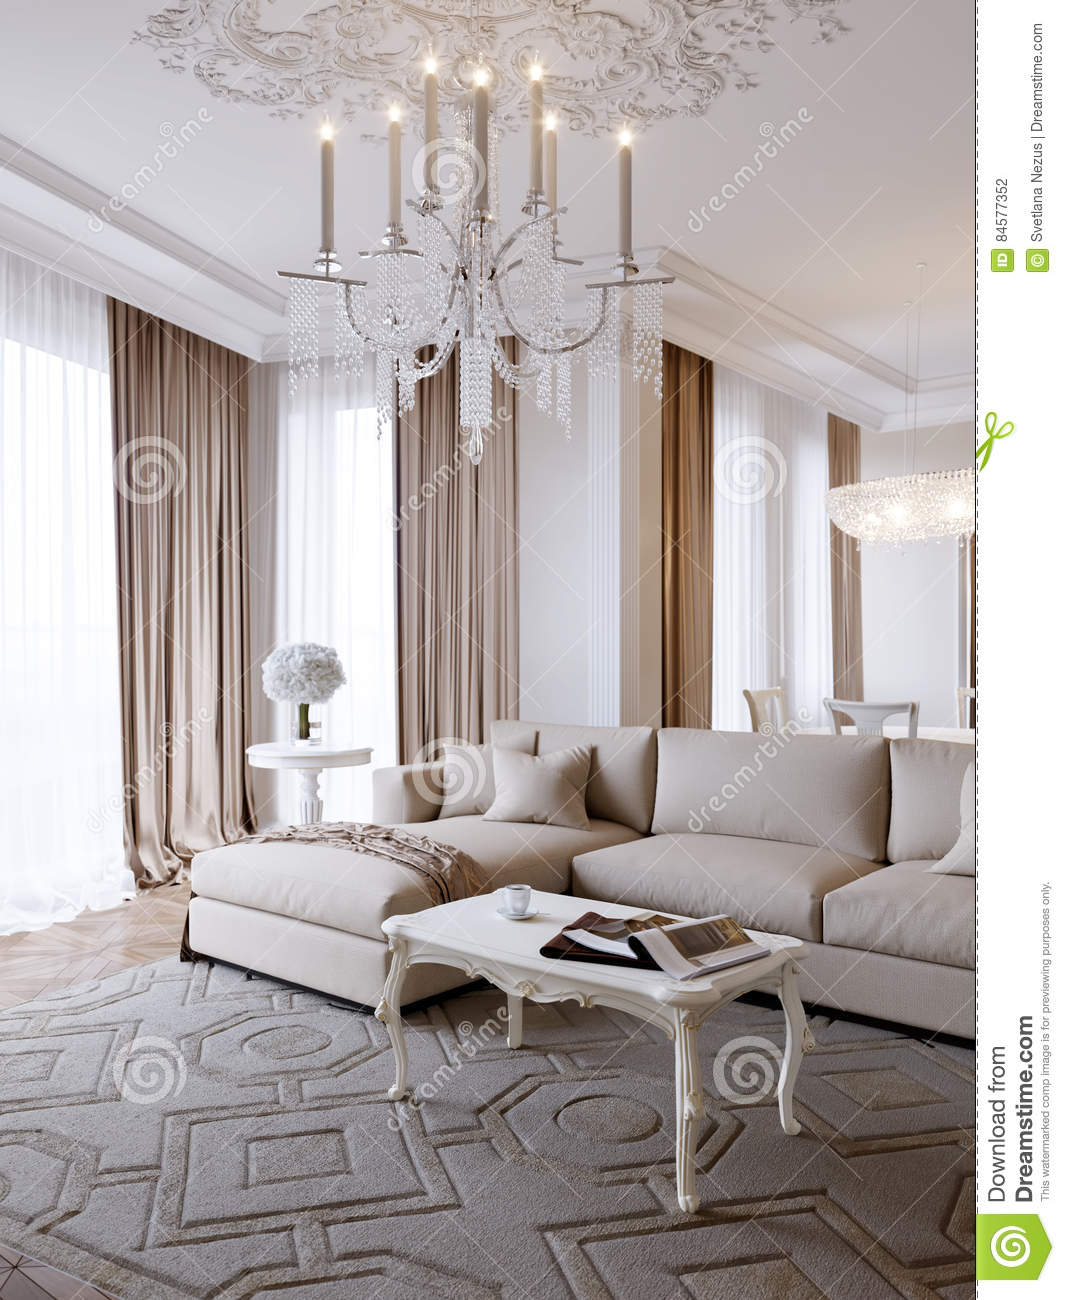 Luxury Classic Living Rooms: Luxury Classic Interior Of Dining Room And Living Room